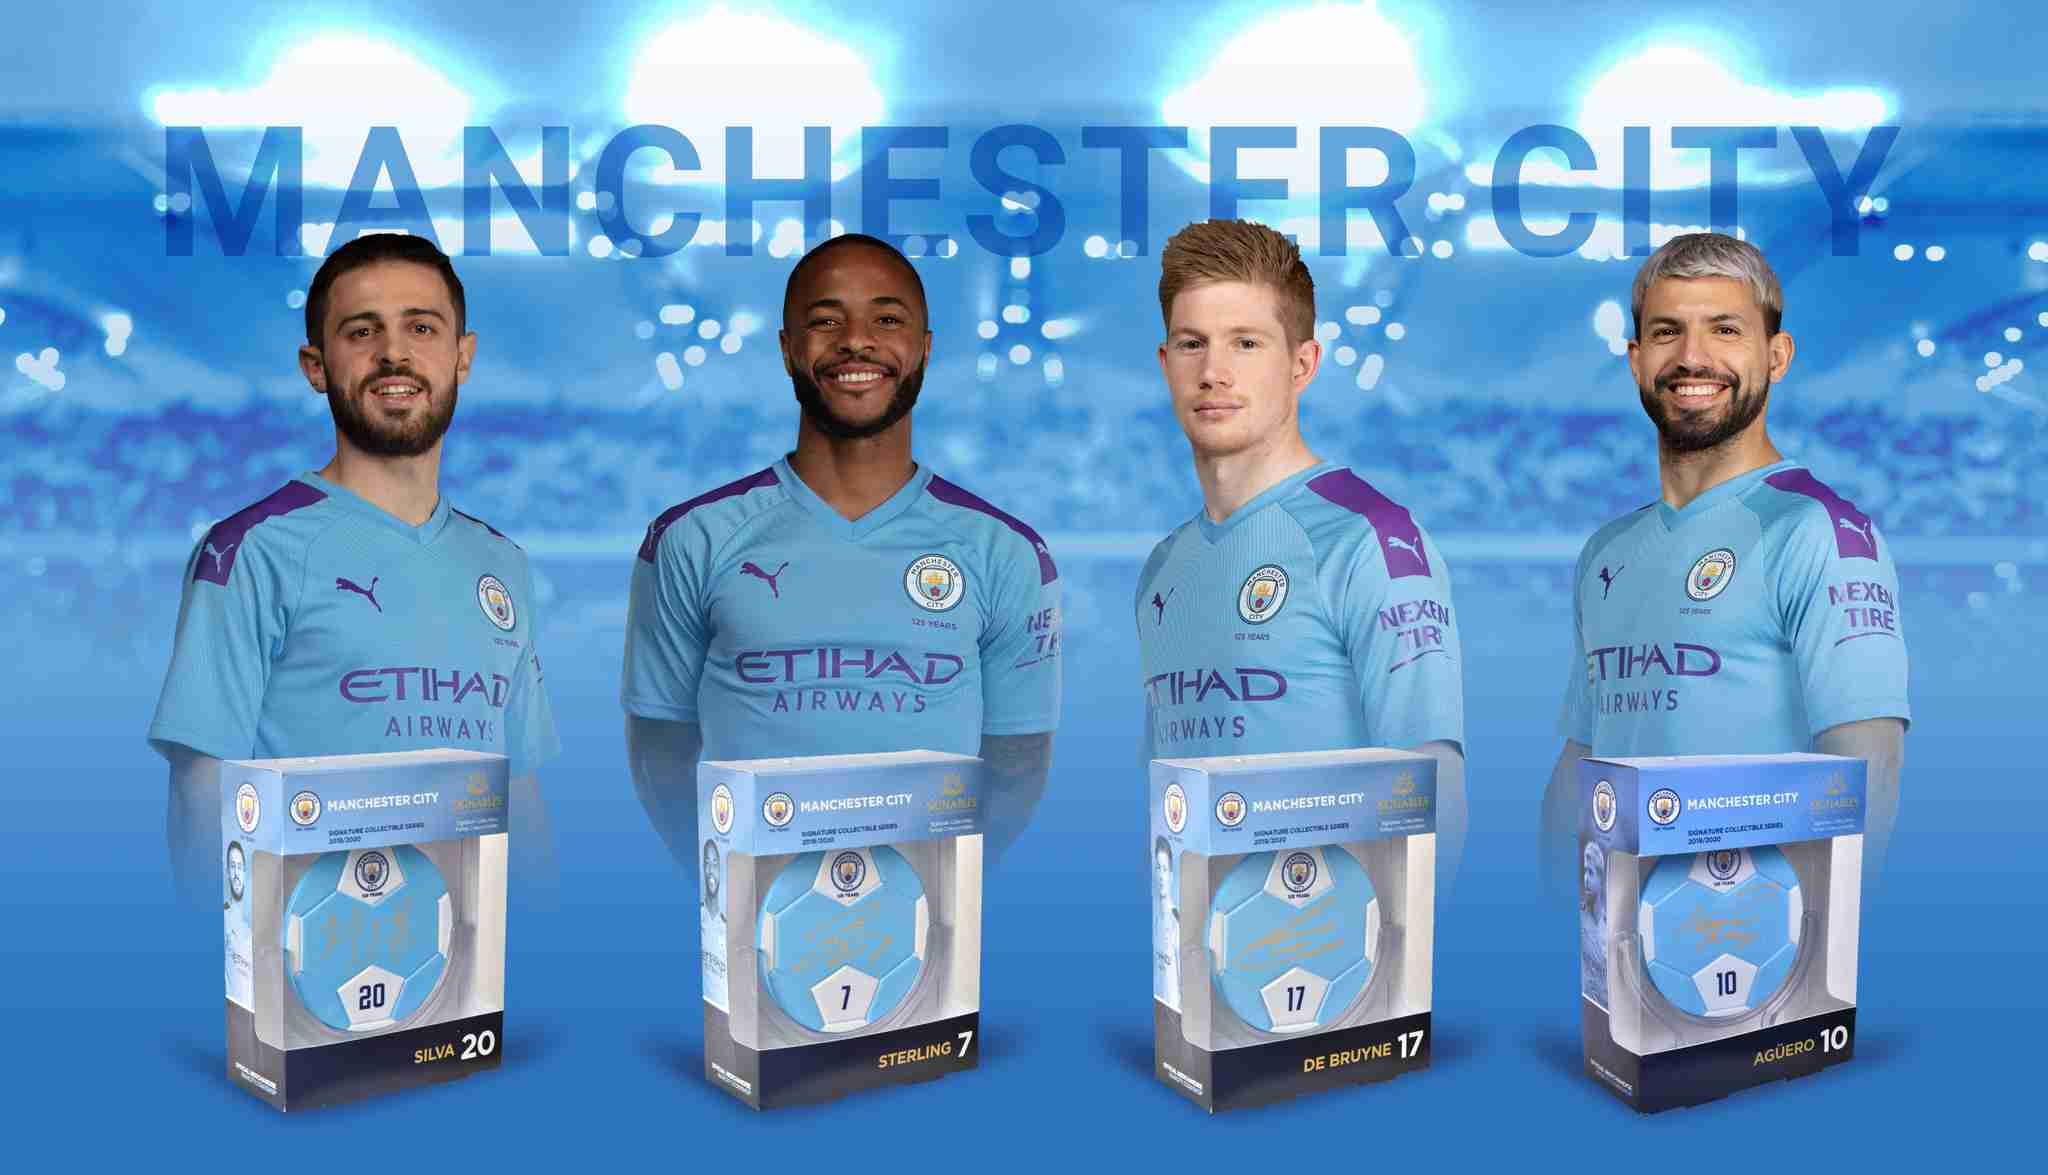 Manchester City F.C. Soccer Players